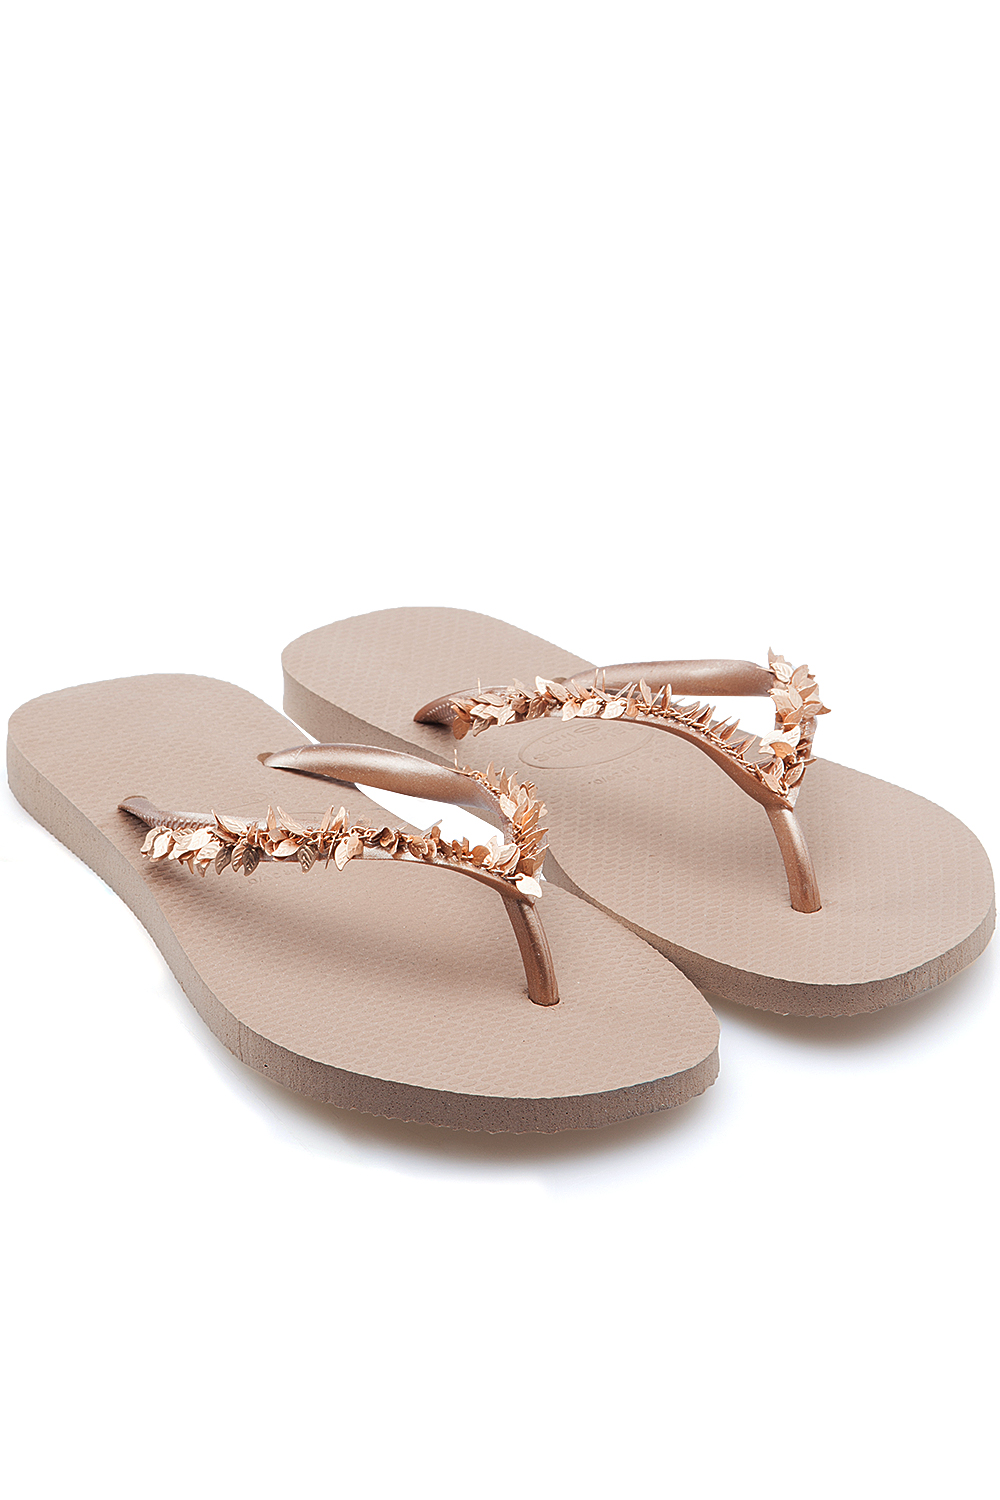 a62b445a72b877 Havaianas Slim Leaves Flip Flops Rose Gold